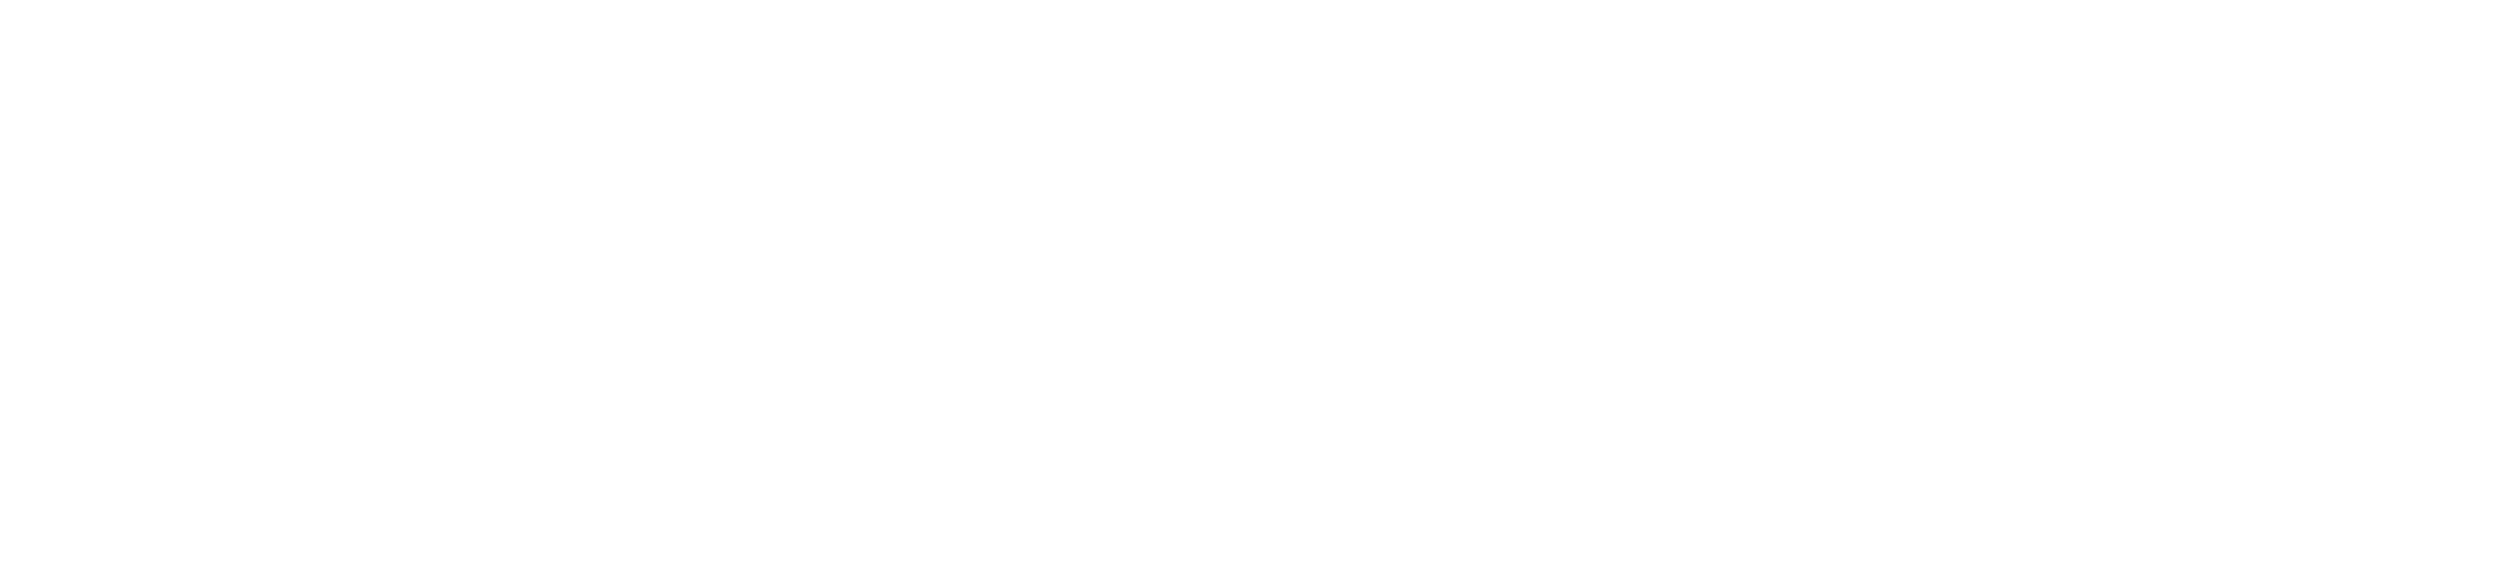 M2 Logistics Transportation & Supply Chain Services